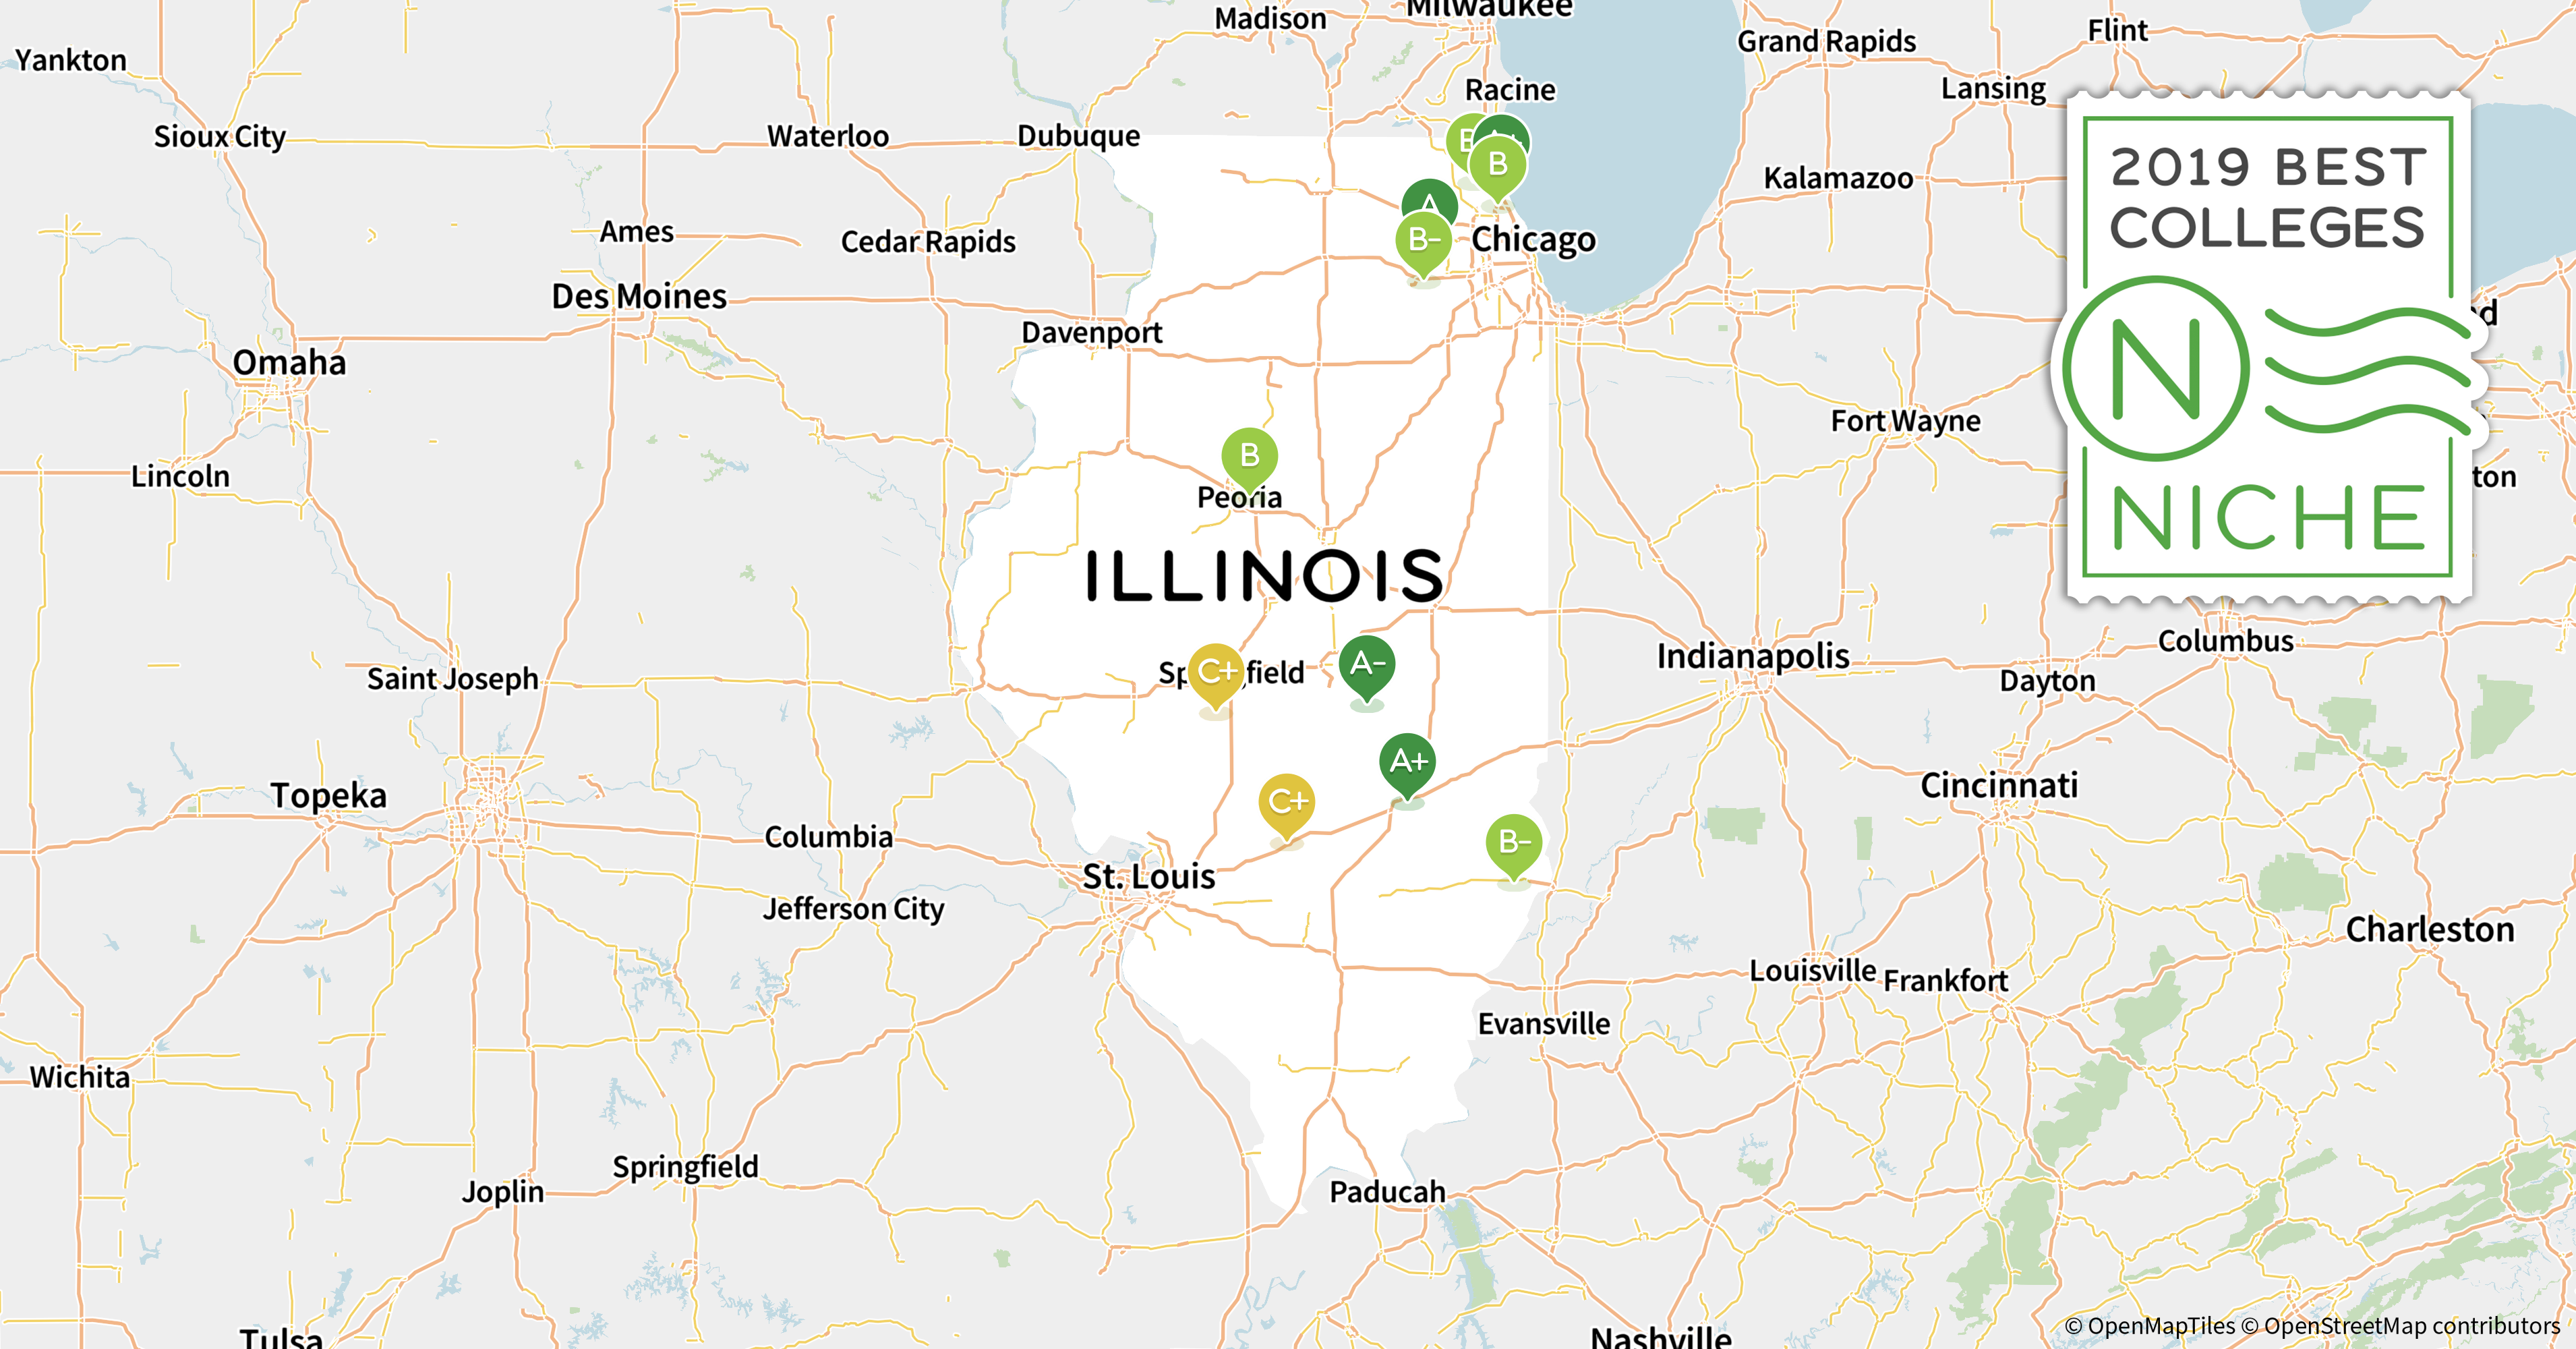 Hardest Colleges to Get Into in Illinois - Niche